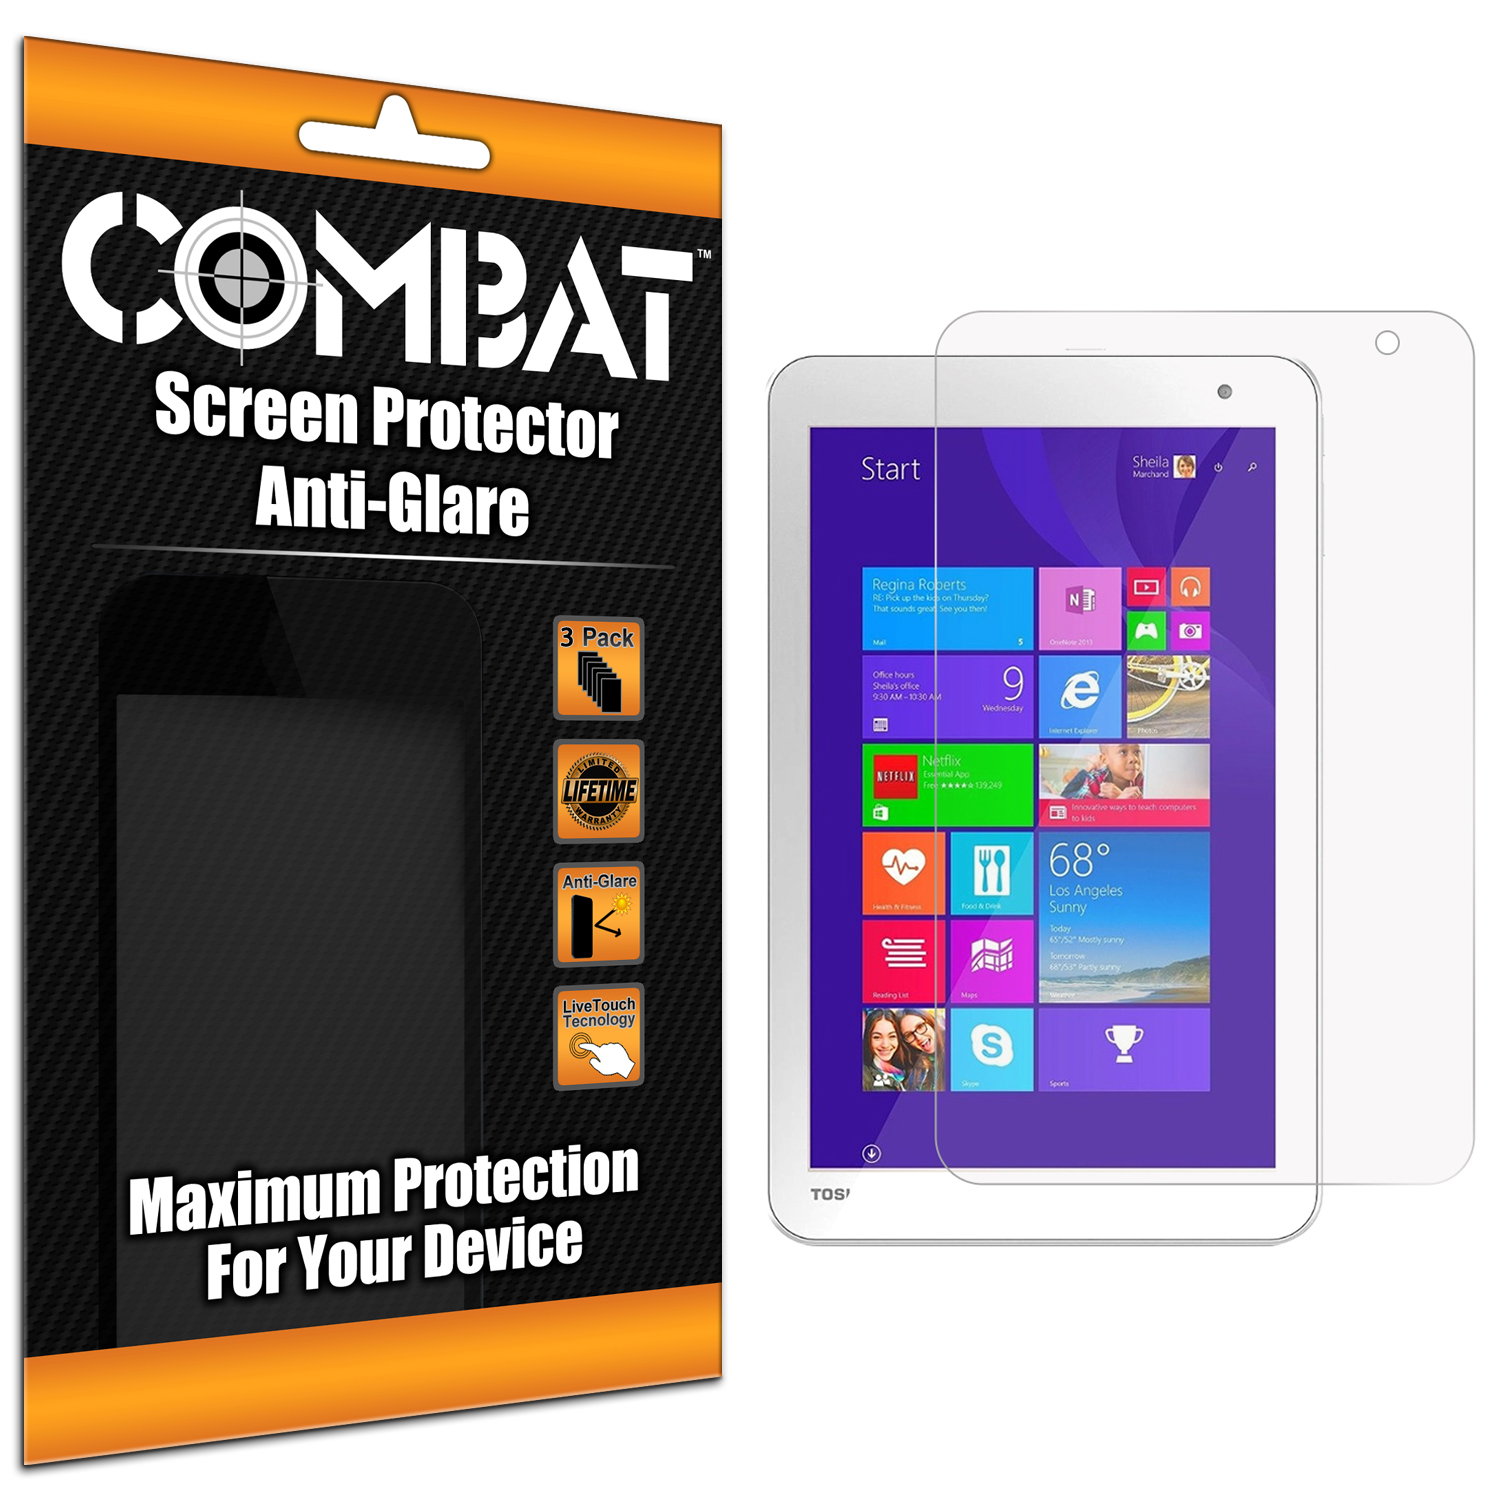 Toshiba Encore 2 8.0 Anti Glare Combat 6 Pack Anti-Glare Matte Screen Protector